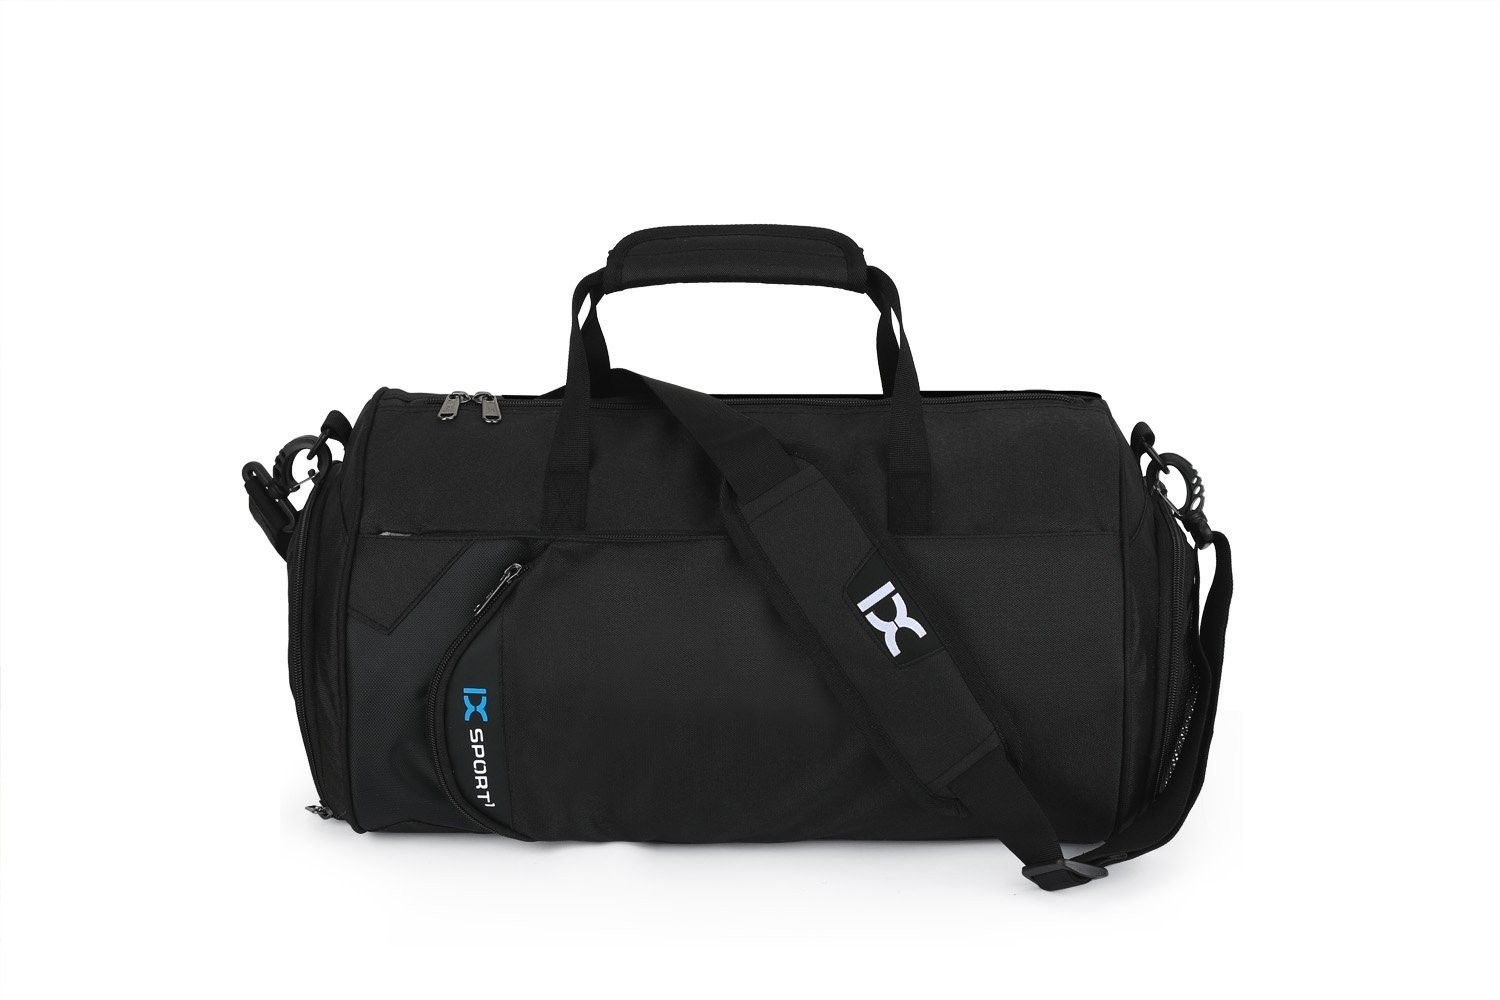 Fitness Sport Small Gym Bag with Shoes Compartment Waterproof Travel ... eebbc90f8031a